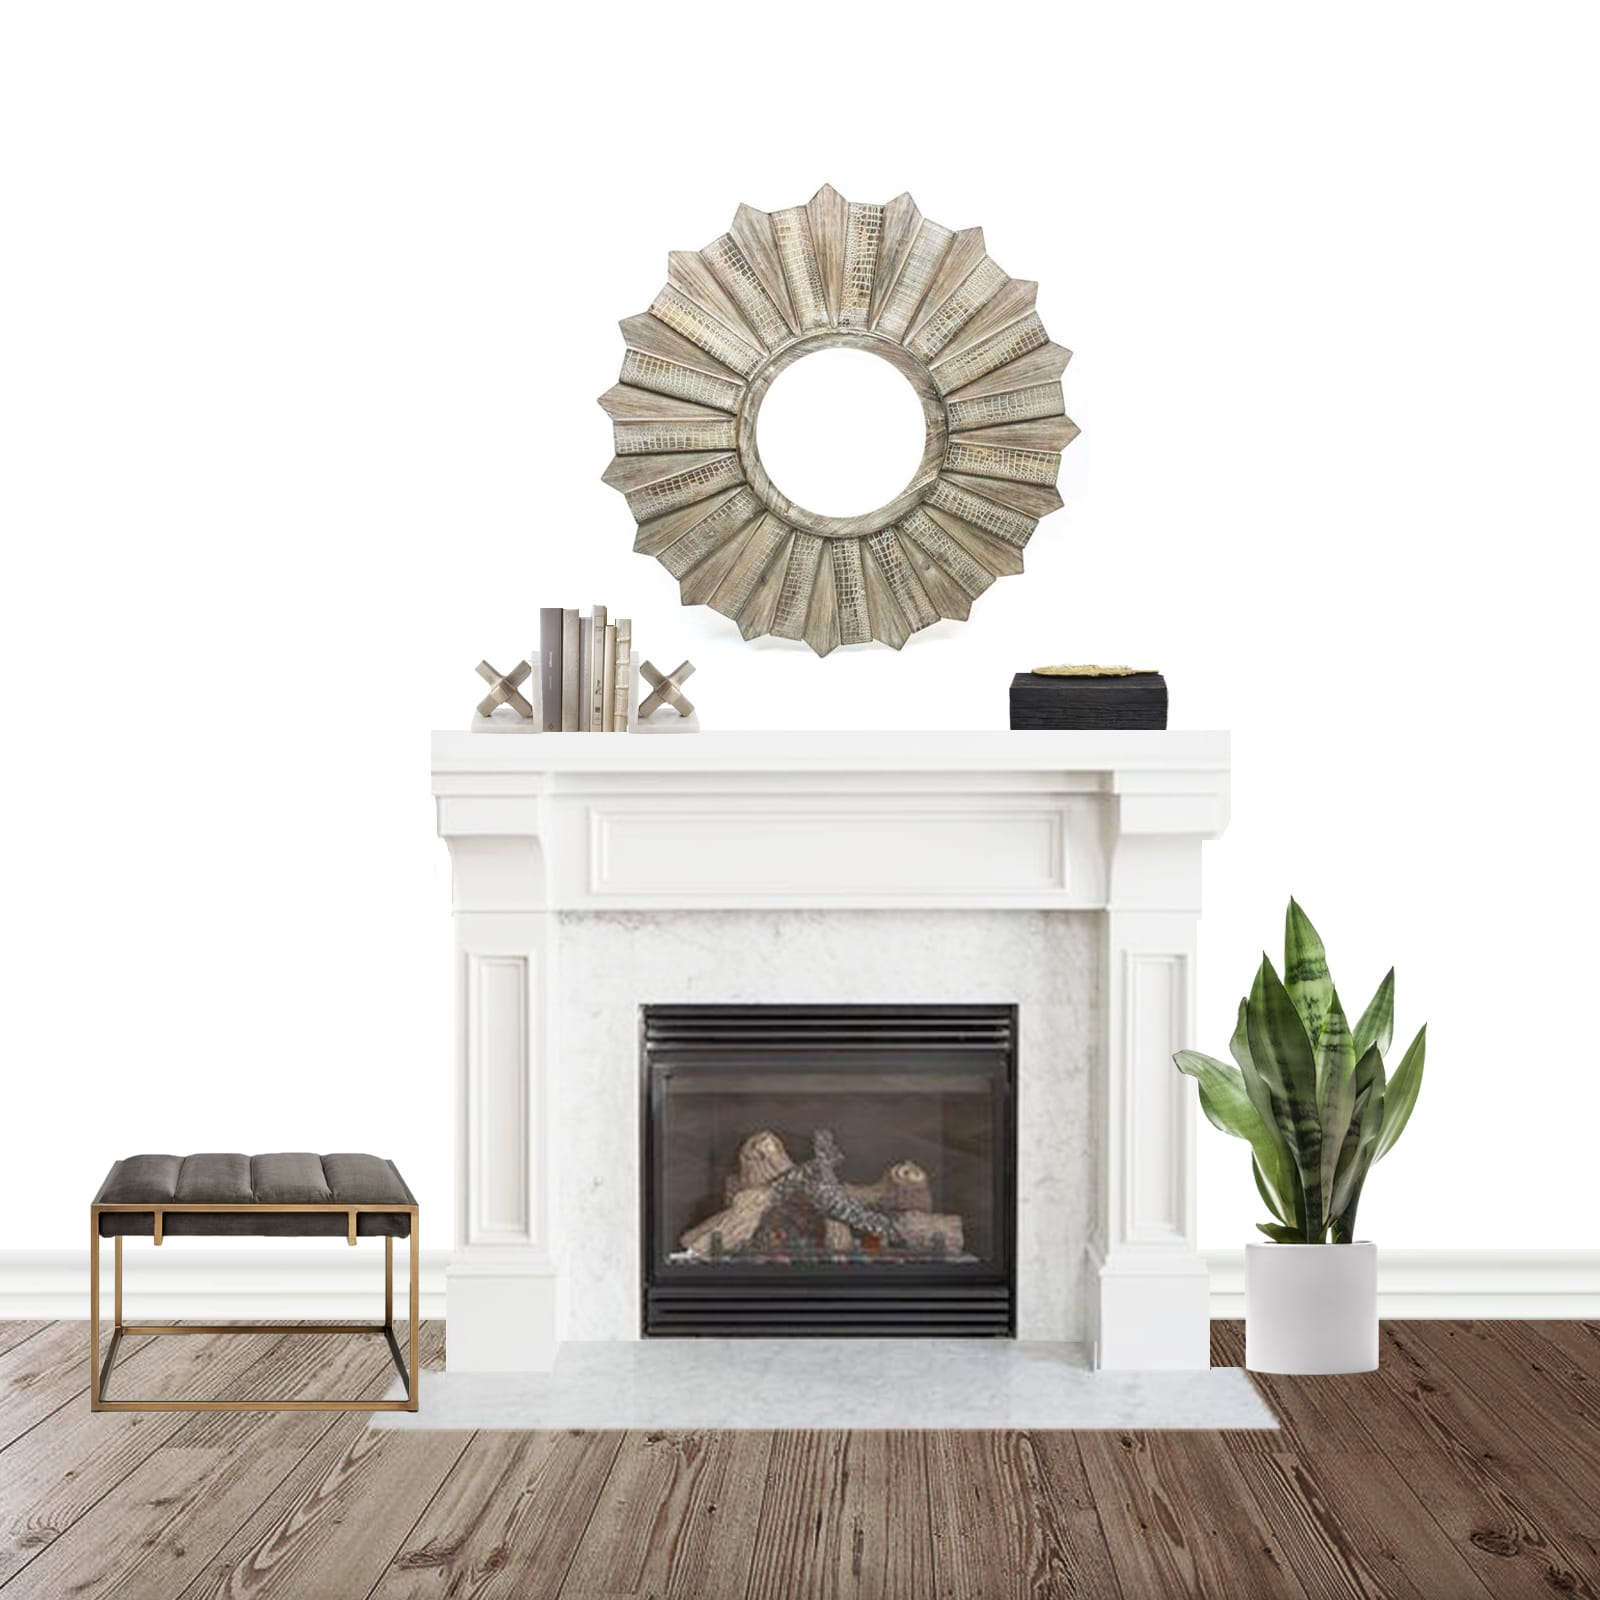 Fireplace Interior Design - Neutral & Sophisticated